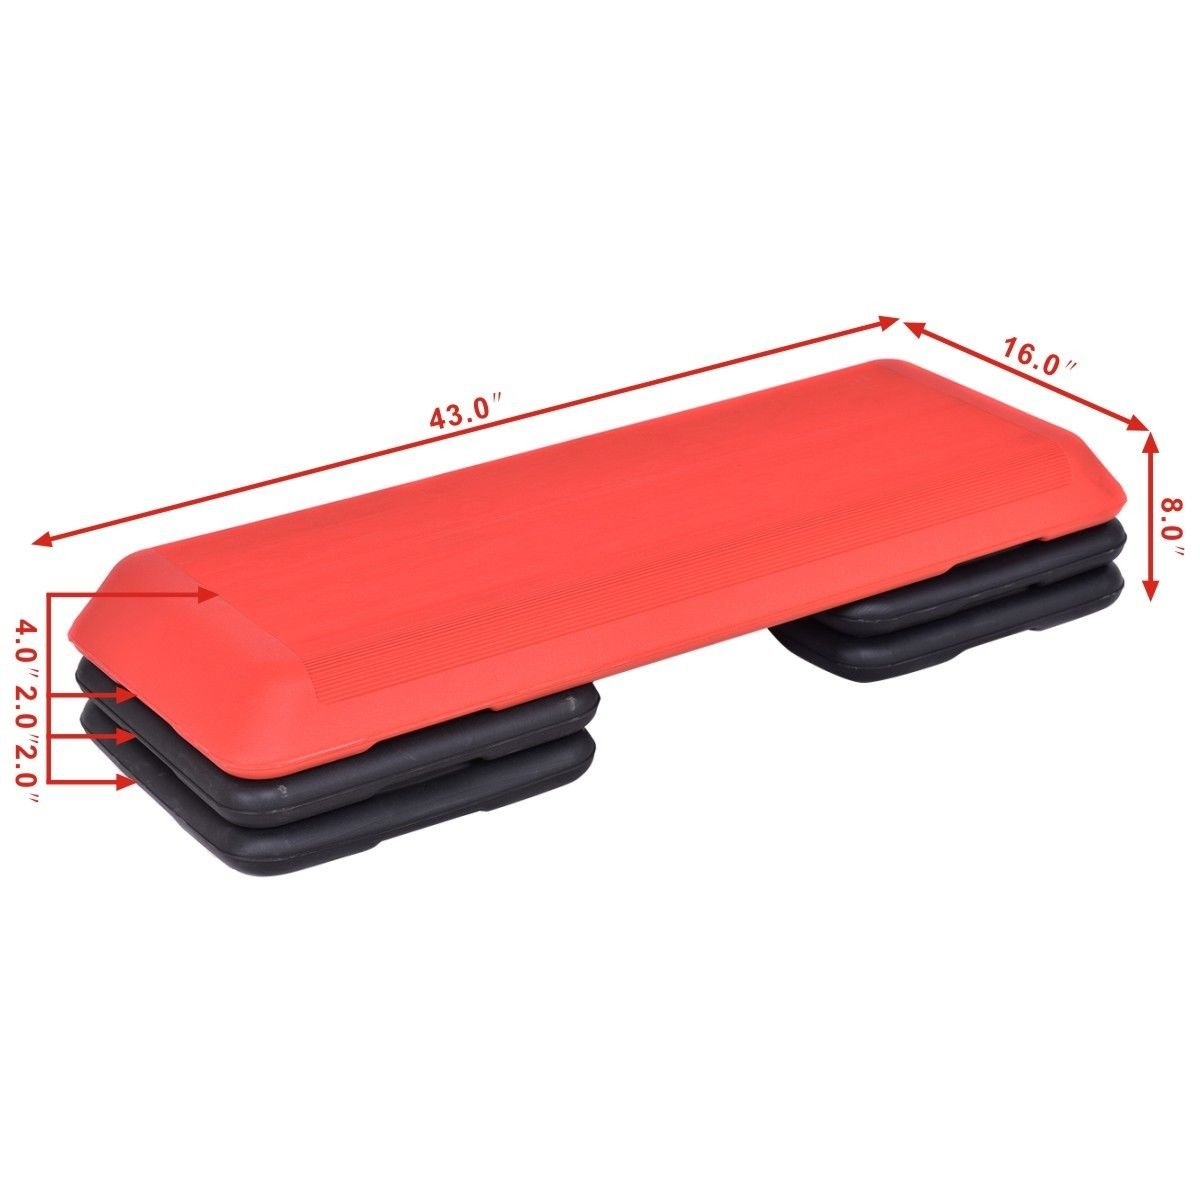 Red Trapezoid 43'' Aerobic Stepper Adjustable Height for Work Out by FDInspiration (Image #8)